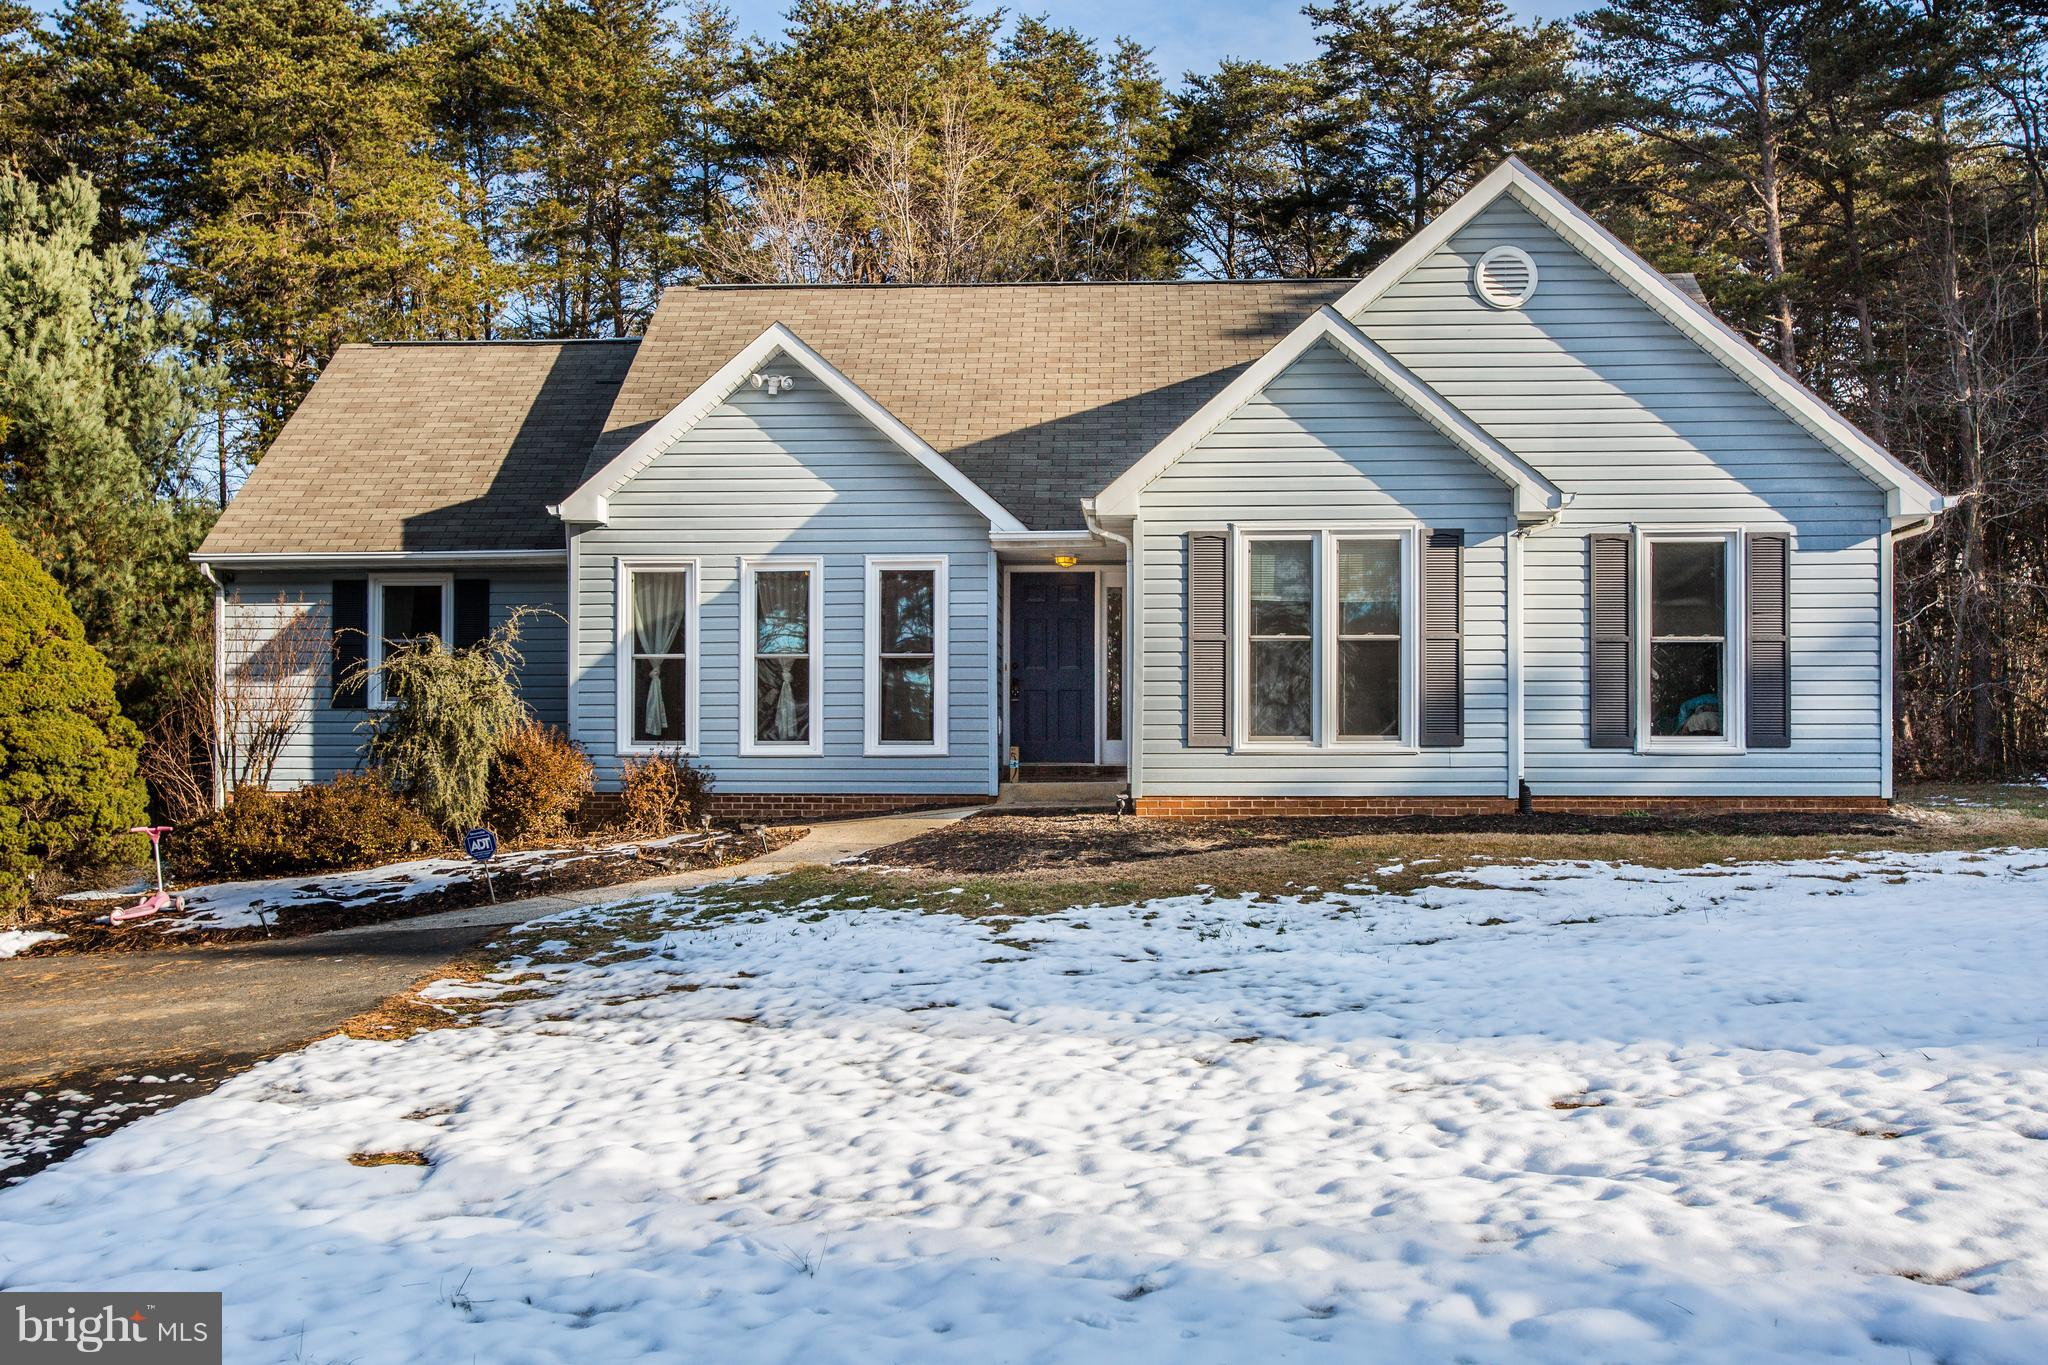 A wonderful open plan style home with wonderful traffic flow. Rancher with crawl space and very spac